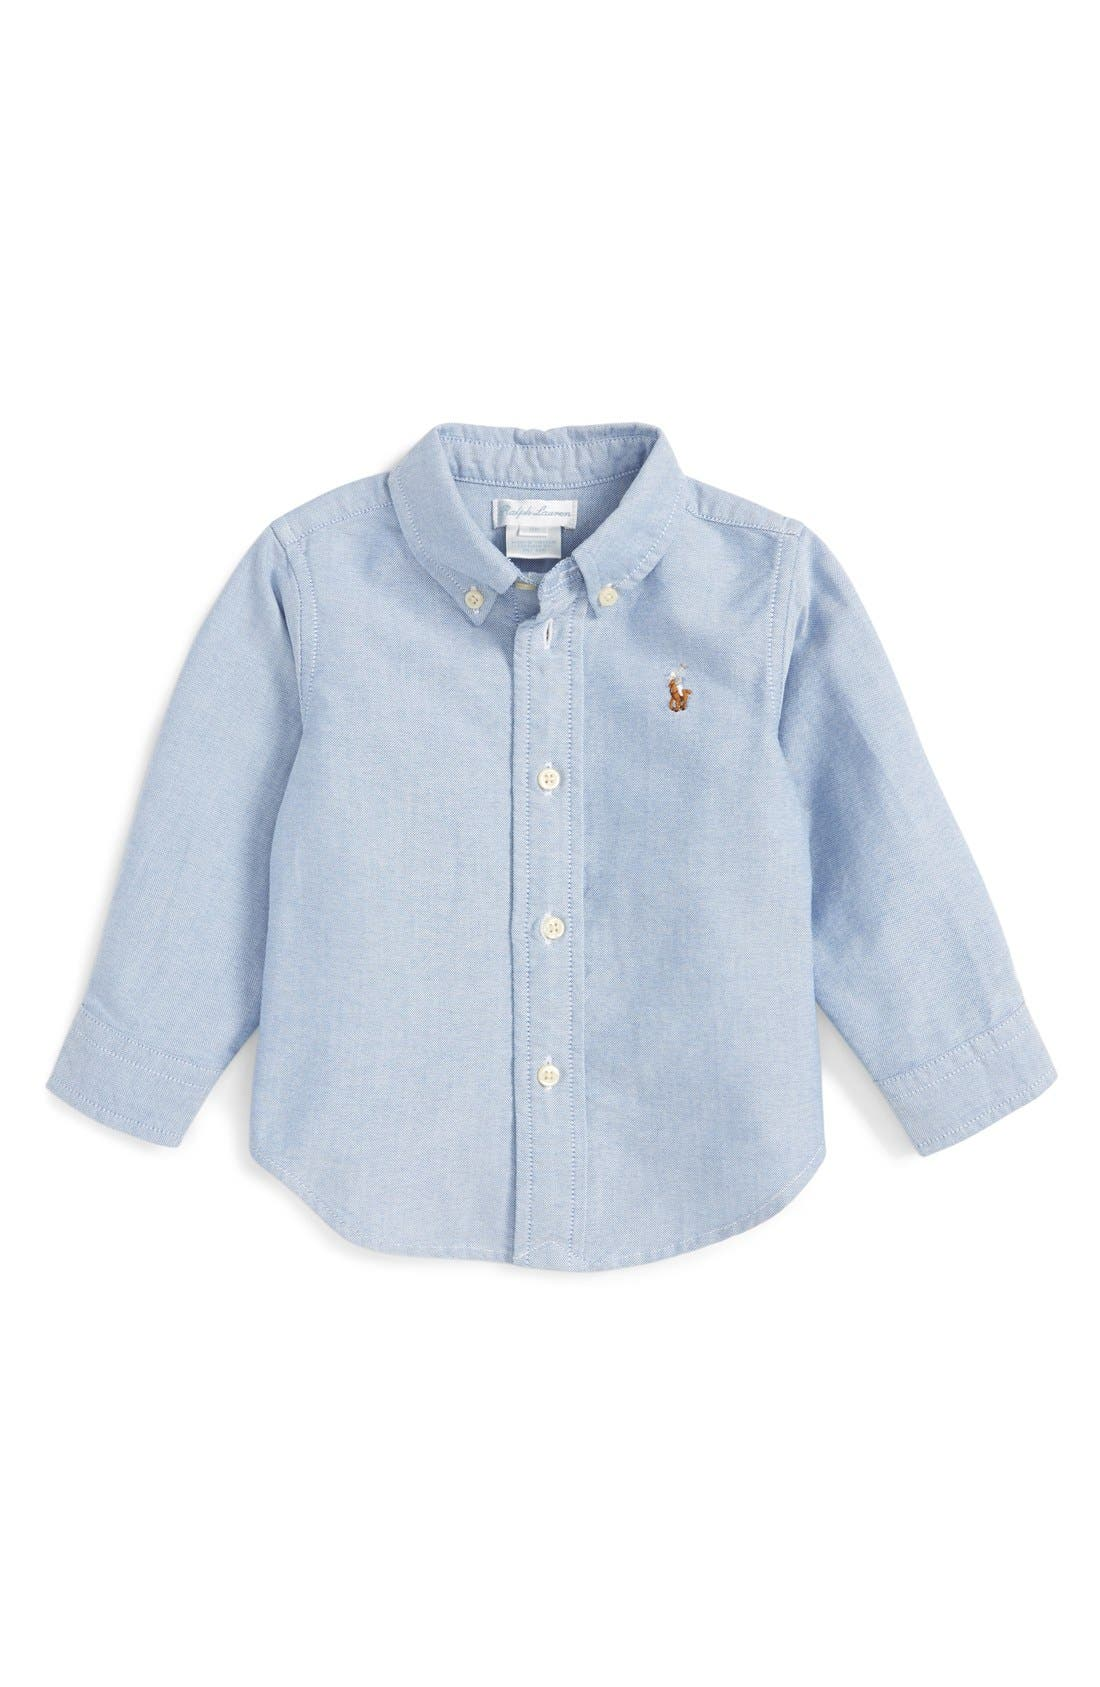 Oxford Shirt,                         Main,                         color, OXFORD BLUE